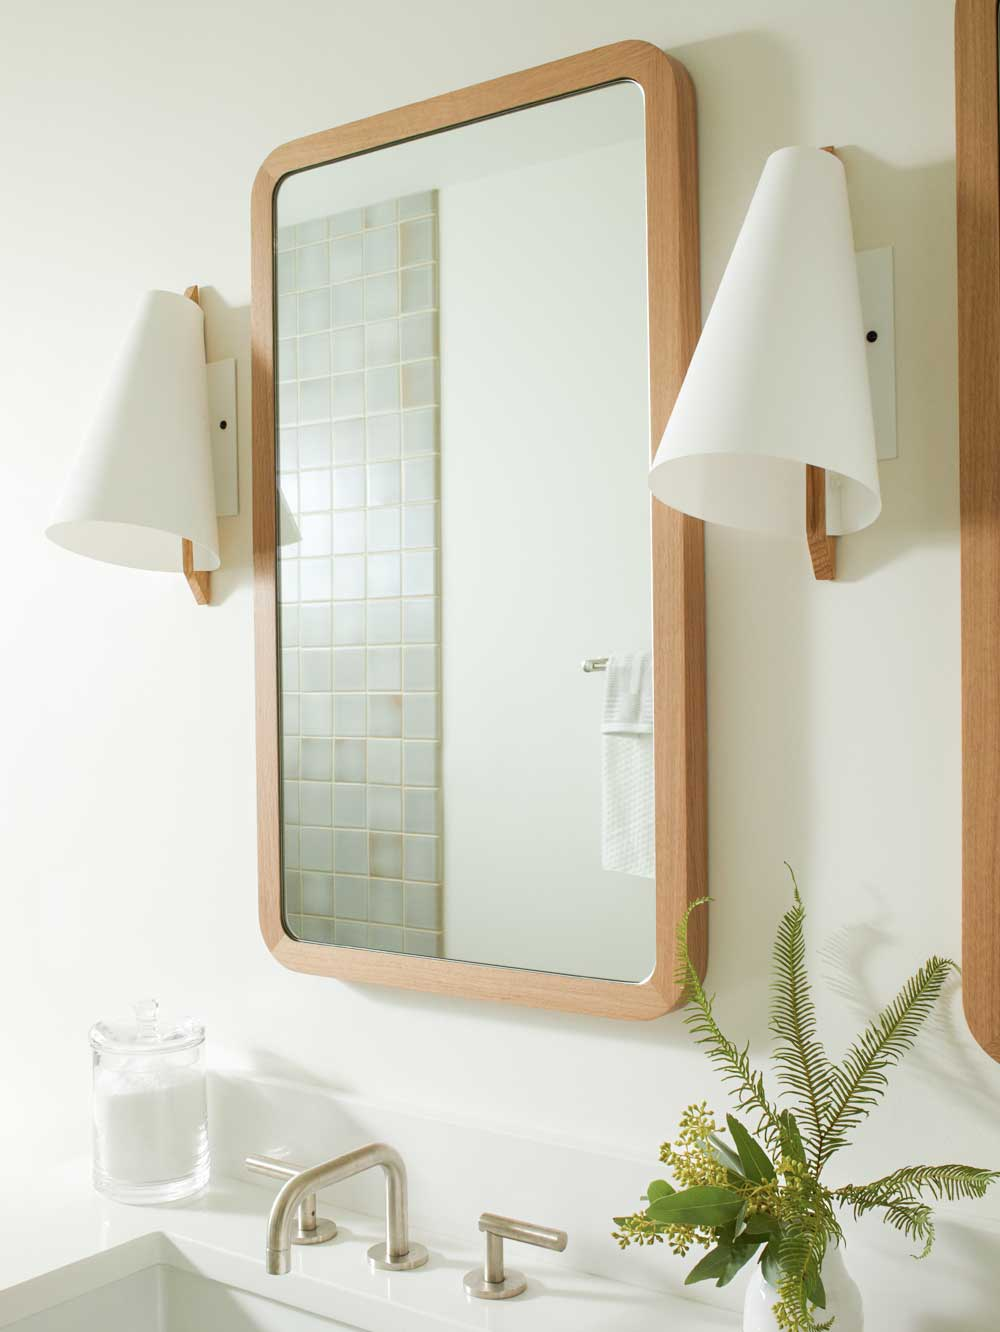 Minimal Master Bath with Custom Oak Mirrors & Brendan Ravenhill Sconces | Casework Interior Design | Portland, OR